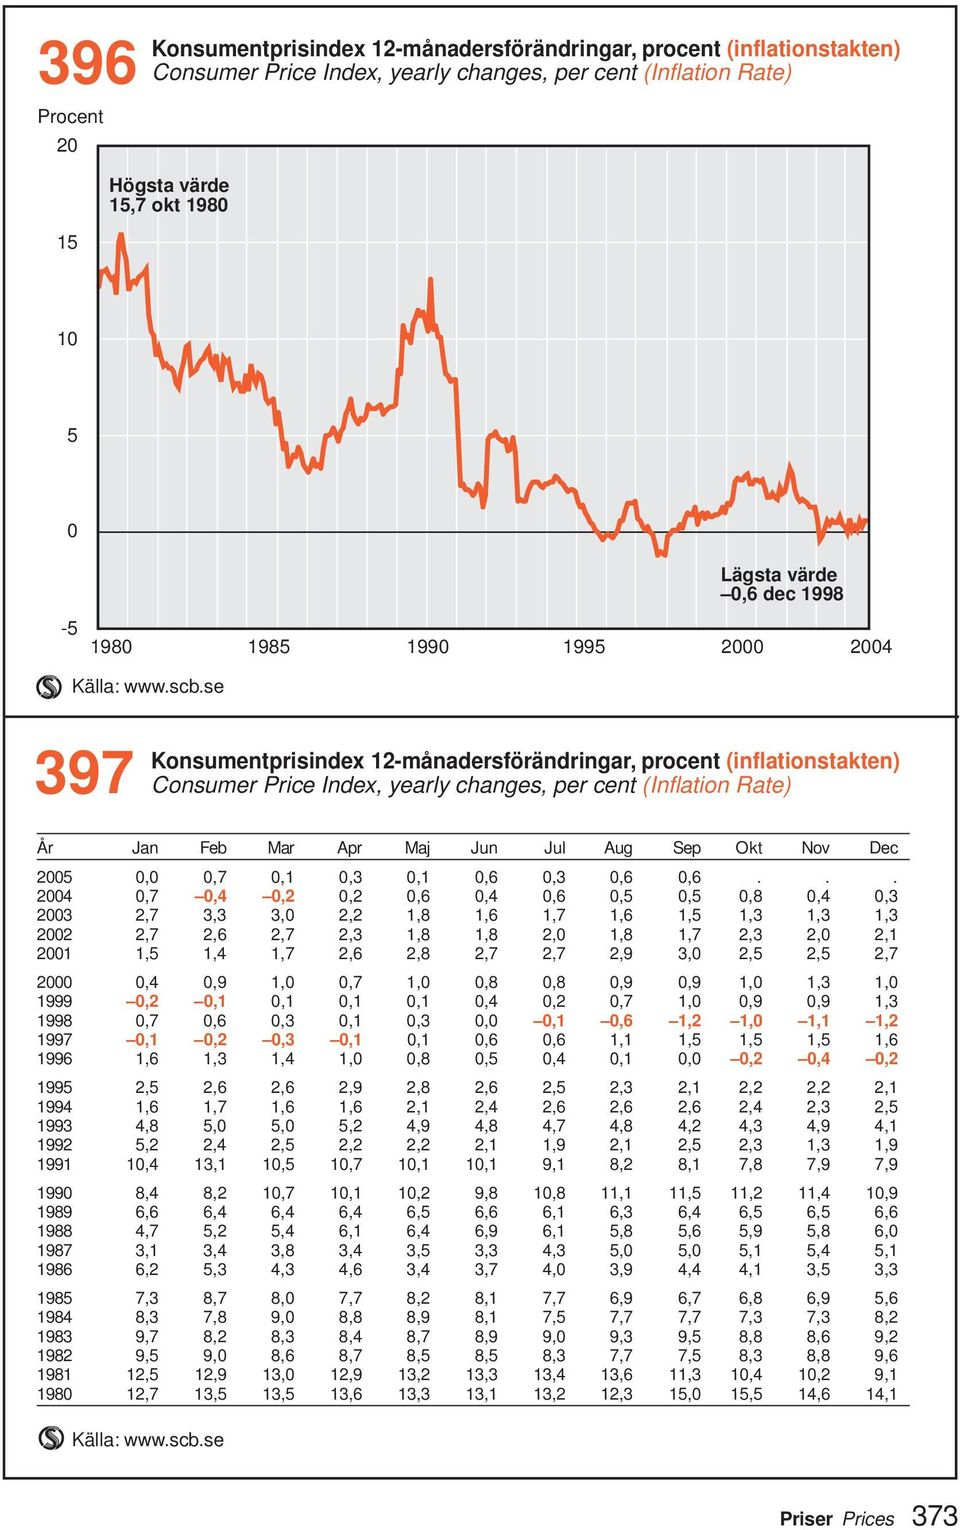 se 397 Konsumentprisindex 12-månadersförändringar, procent (inflationstakten) Consumer Price Index, yearly changes, per cent (Inflation Rate) År Jan Feb Mar Apr Maj Jun Jul Aug Sep Okt Nov Dec 2005